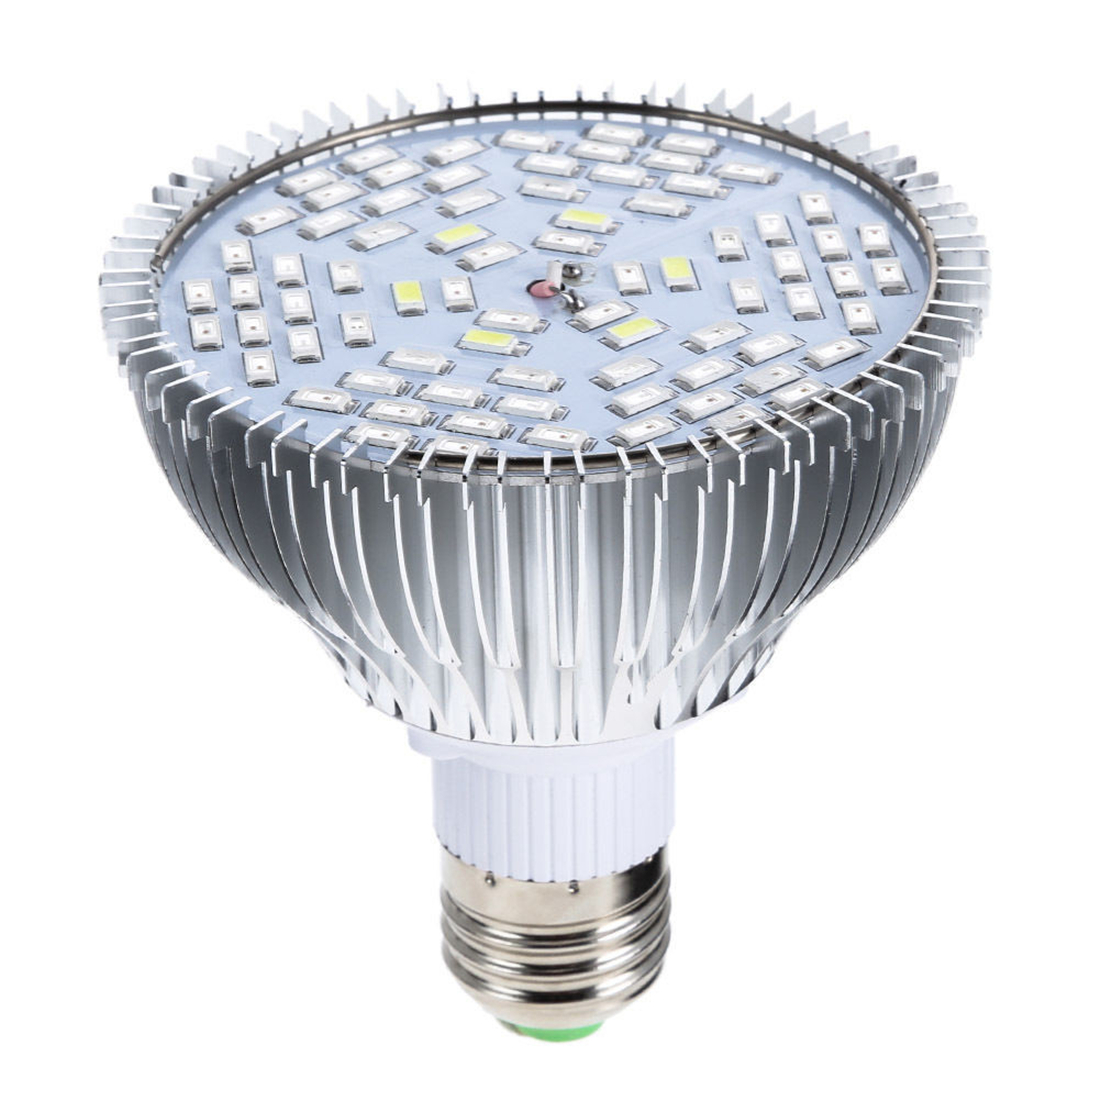 New full spectrum hydroponic LED plant growth lamp indoor plant growth lamp